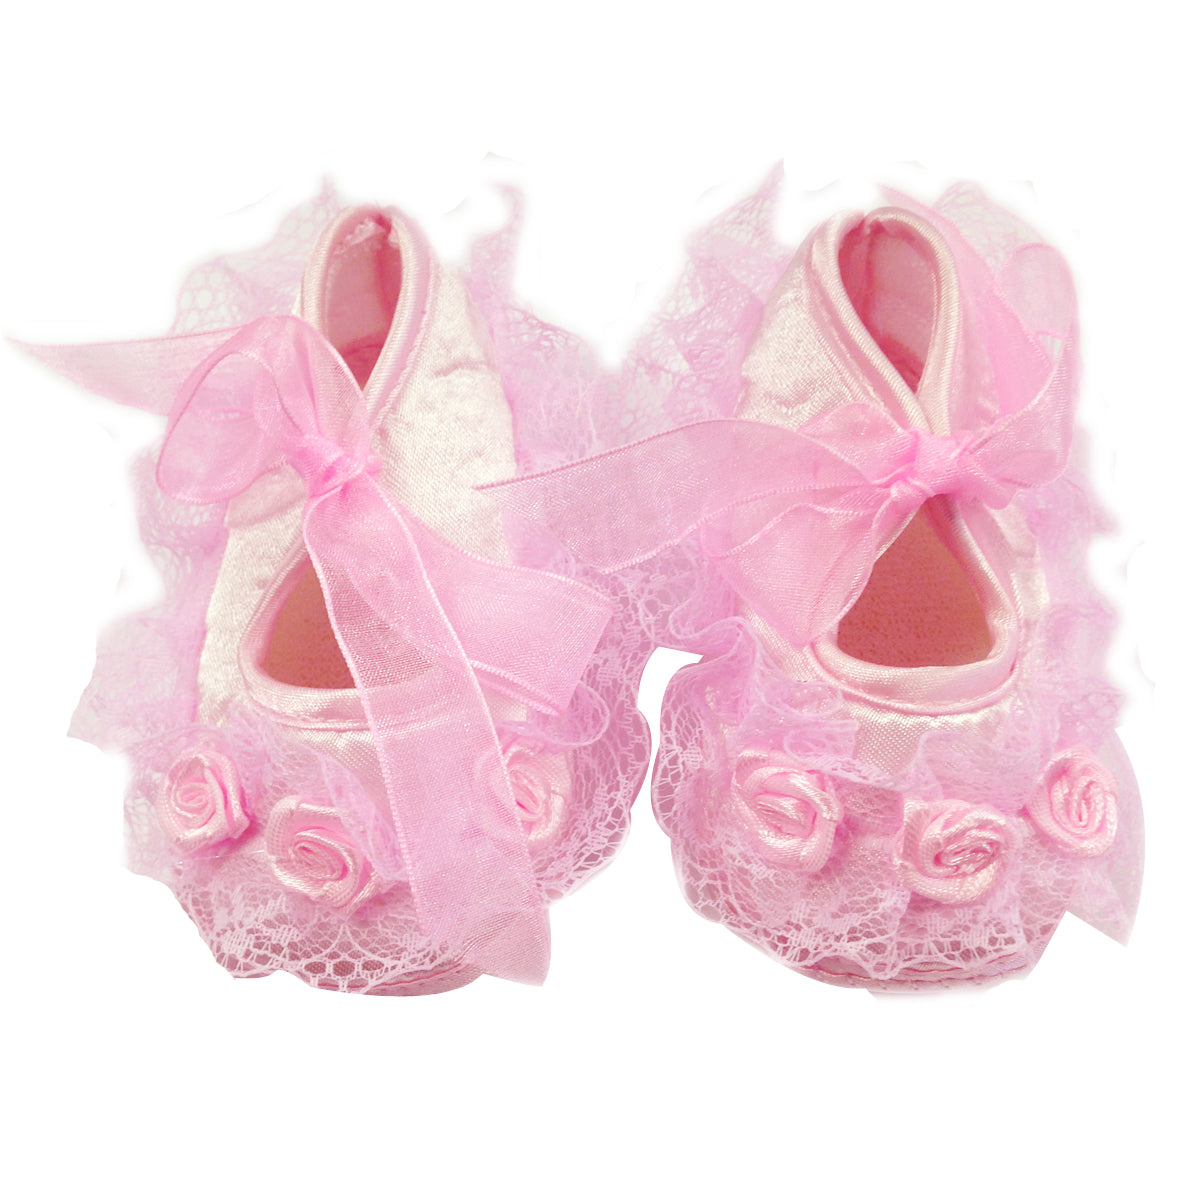 Wrapables Floral and Lace Princess Shoes and Headband Set